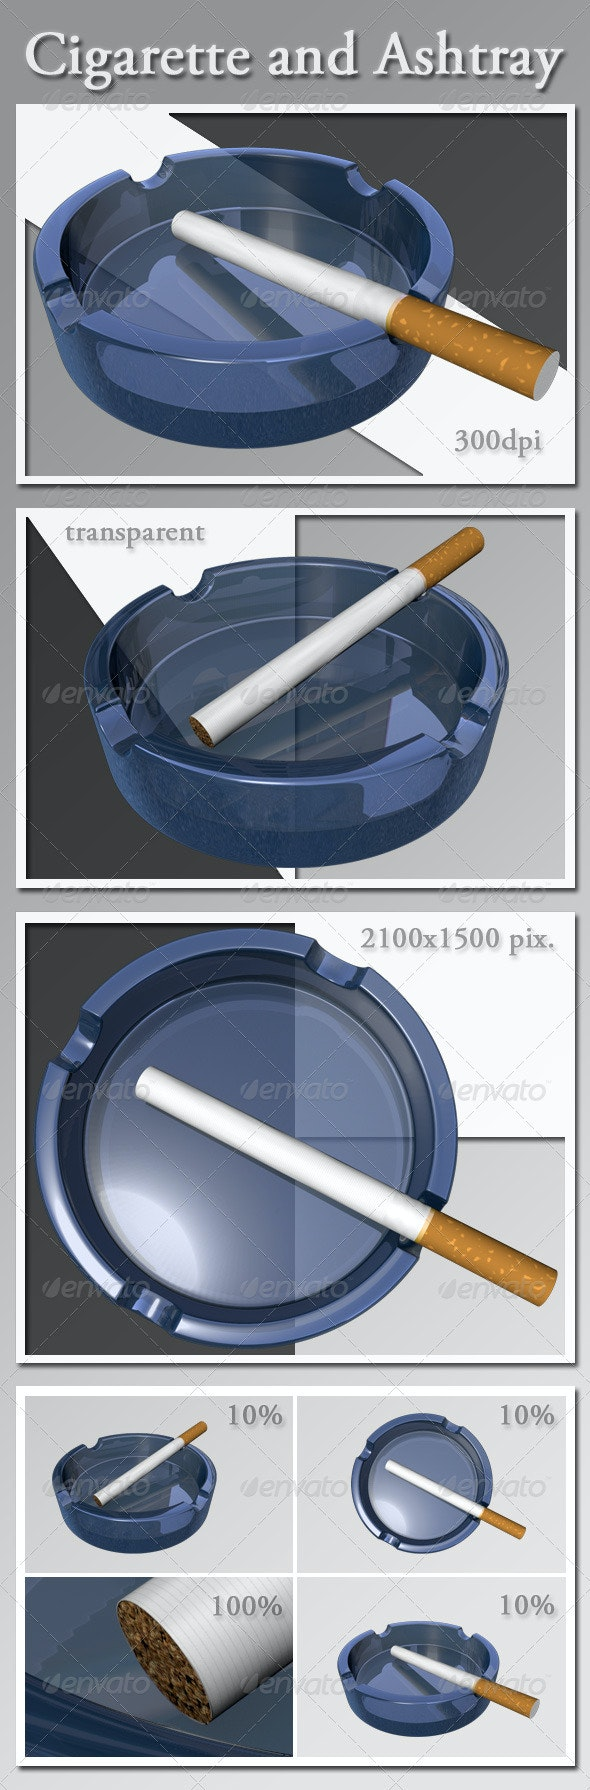 Cigarette and Ashtray - Objects 3D Renders